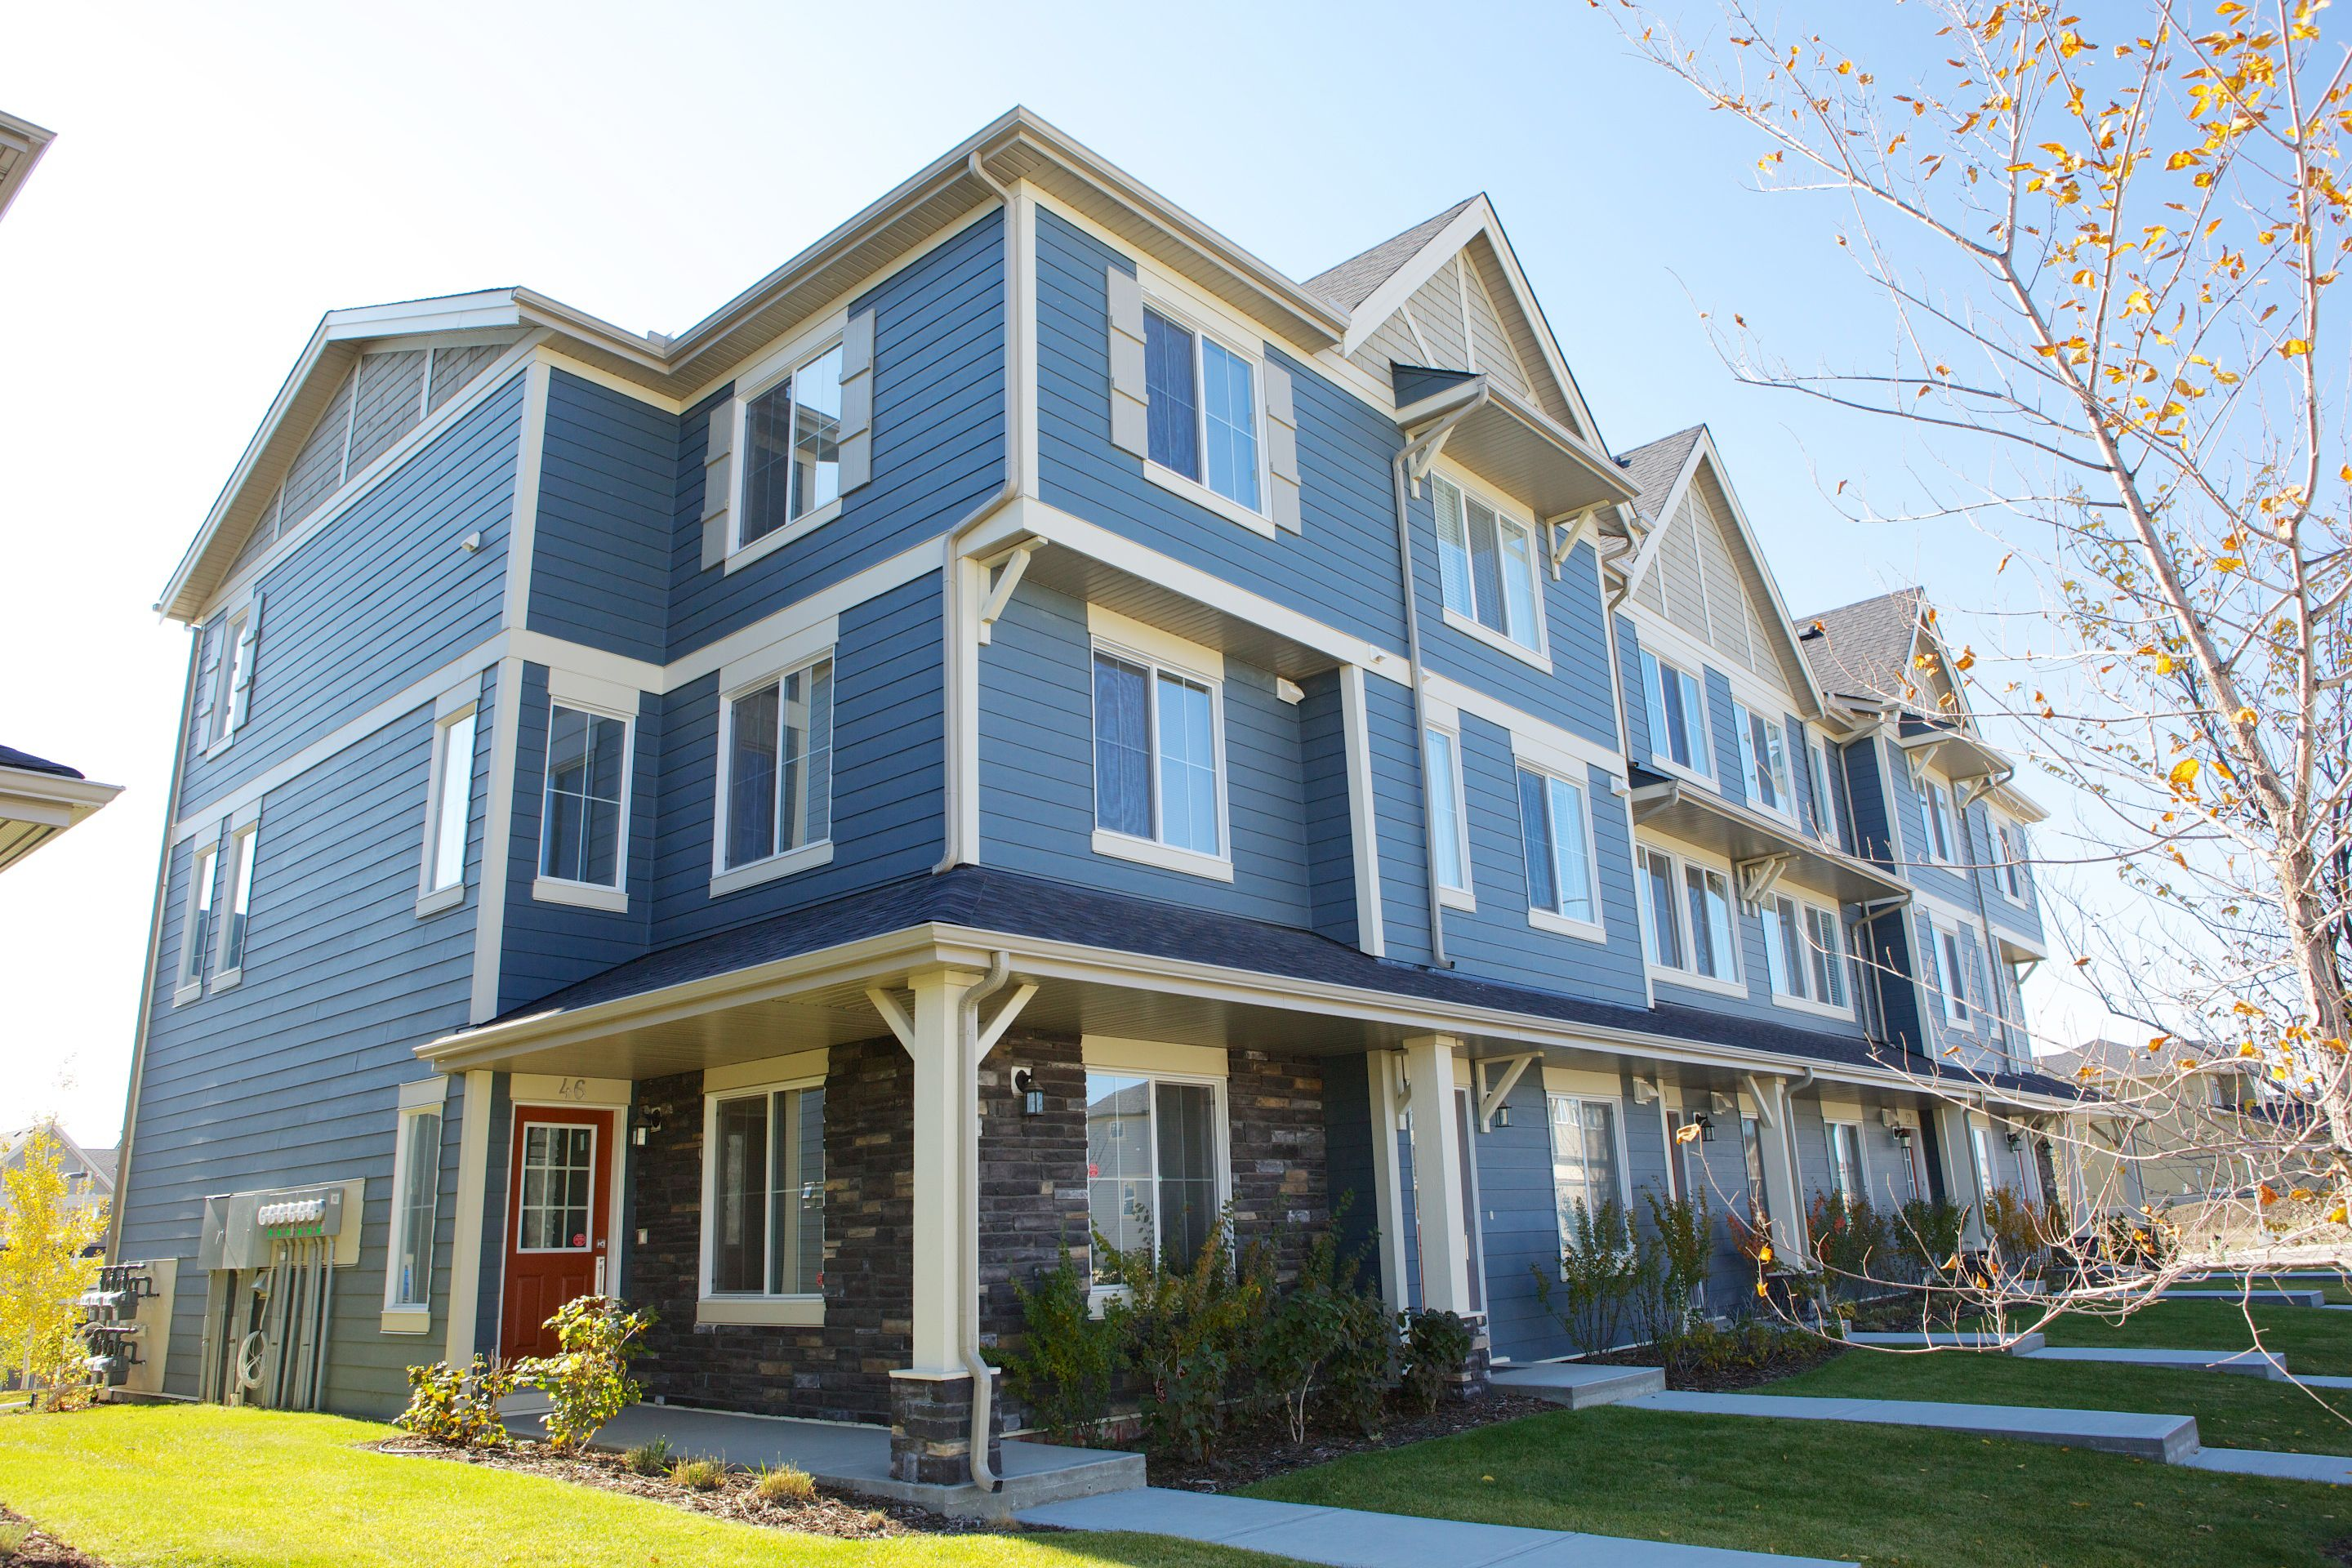 Prospect Ridge Evansview By Avi Urban New Nw Calgary Townhomes Craftsman Exterior With James Hardie Siding Doub Townhouse Craftsman Exterior Condos For Sale